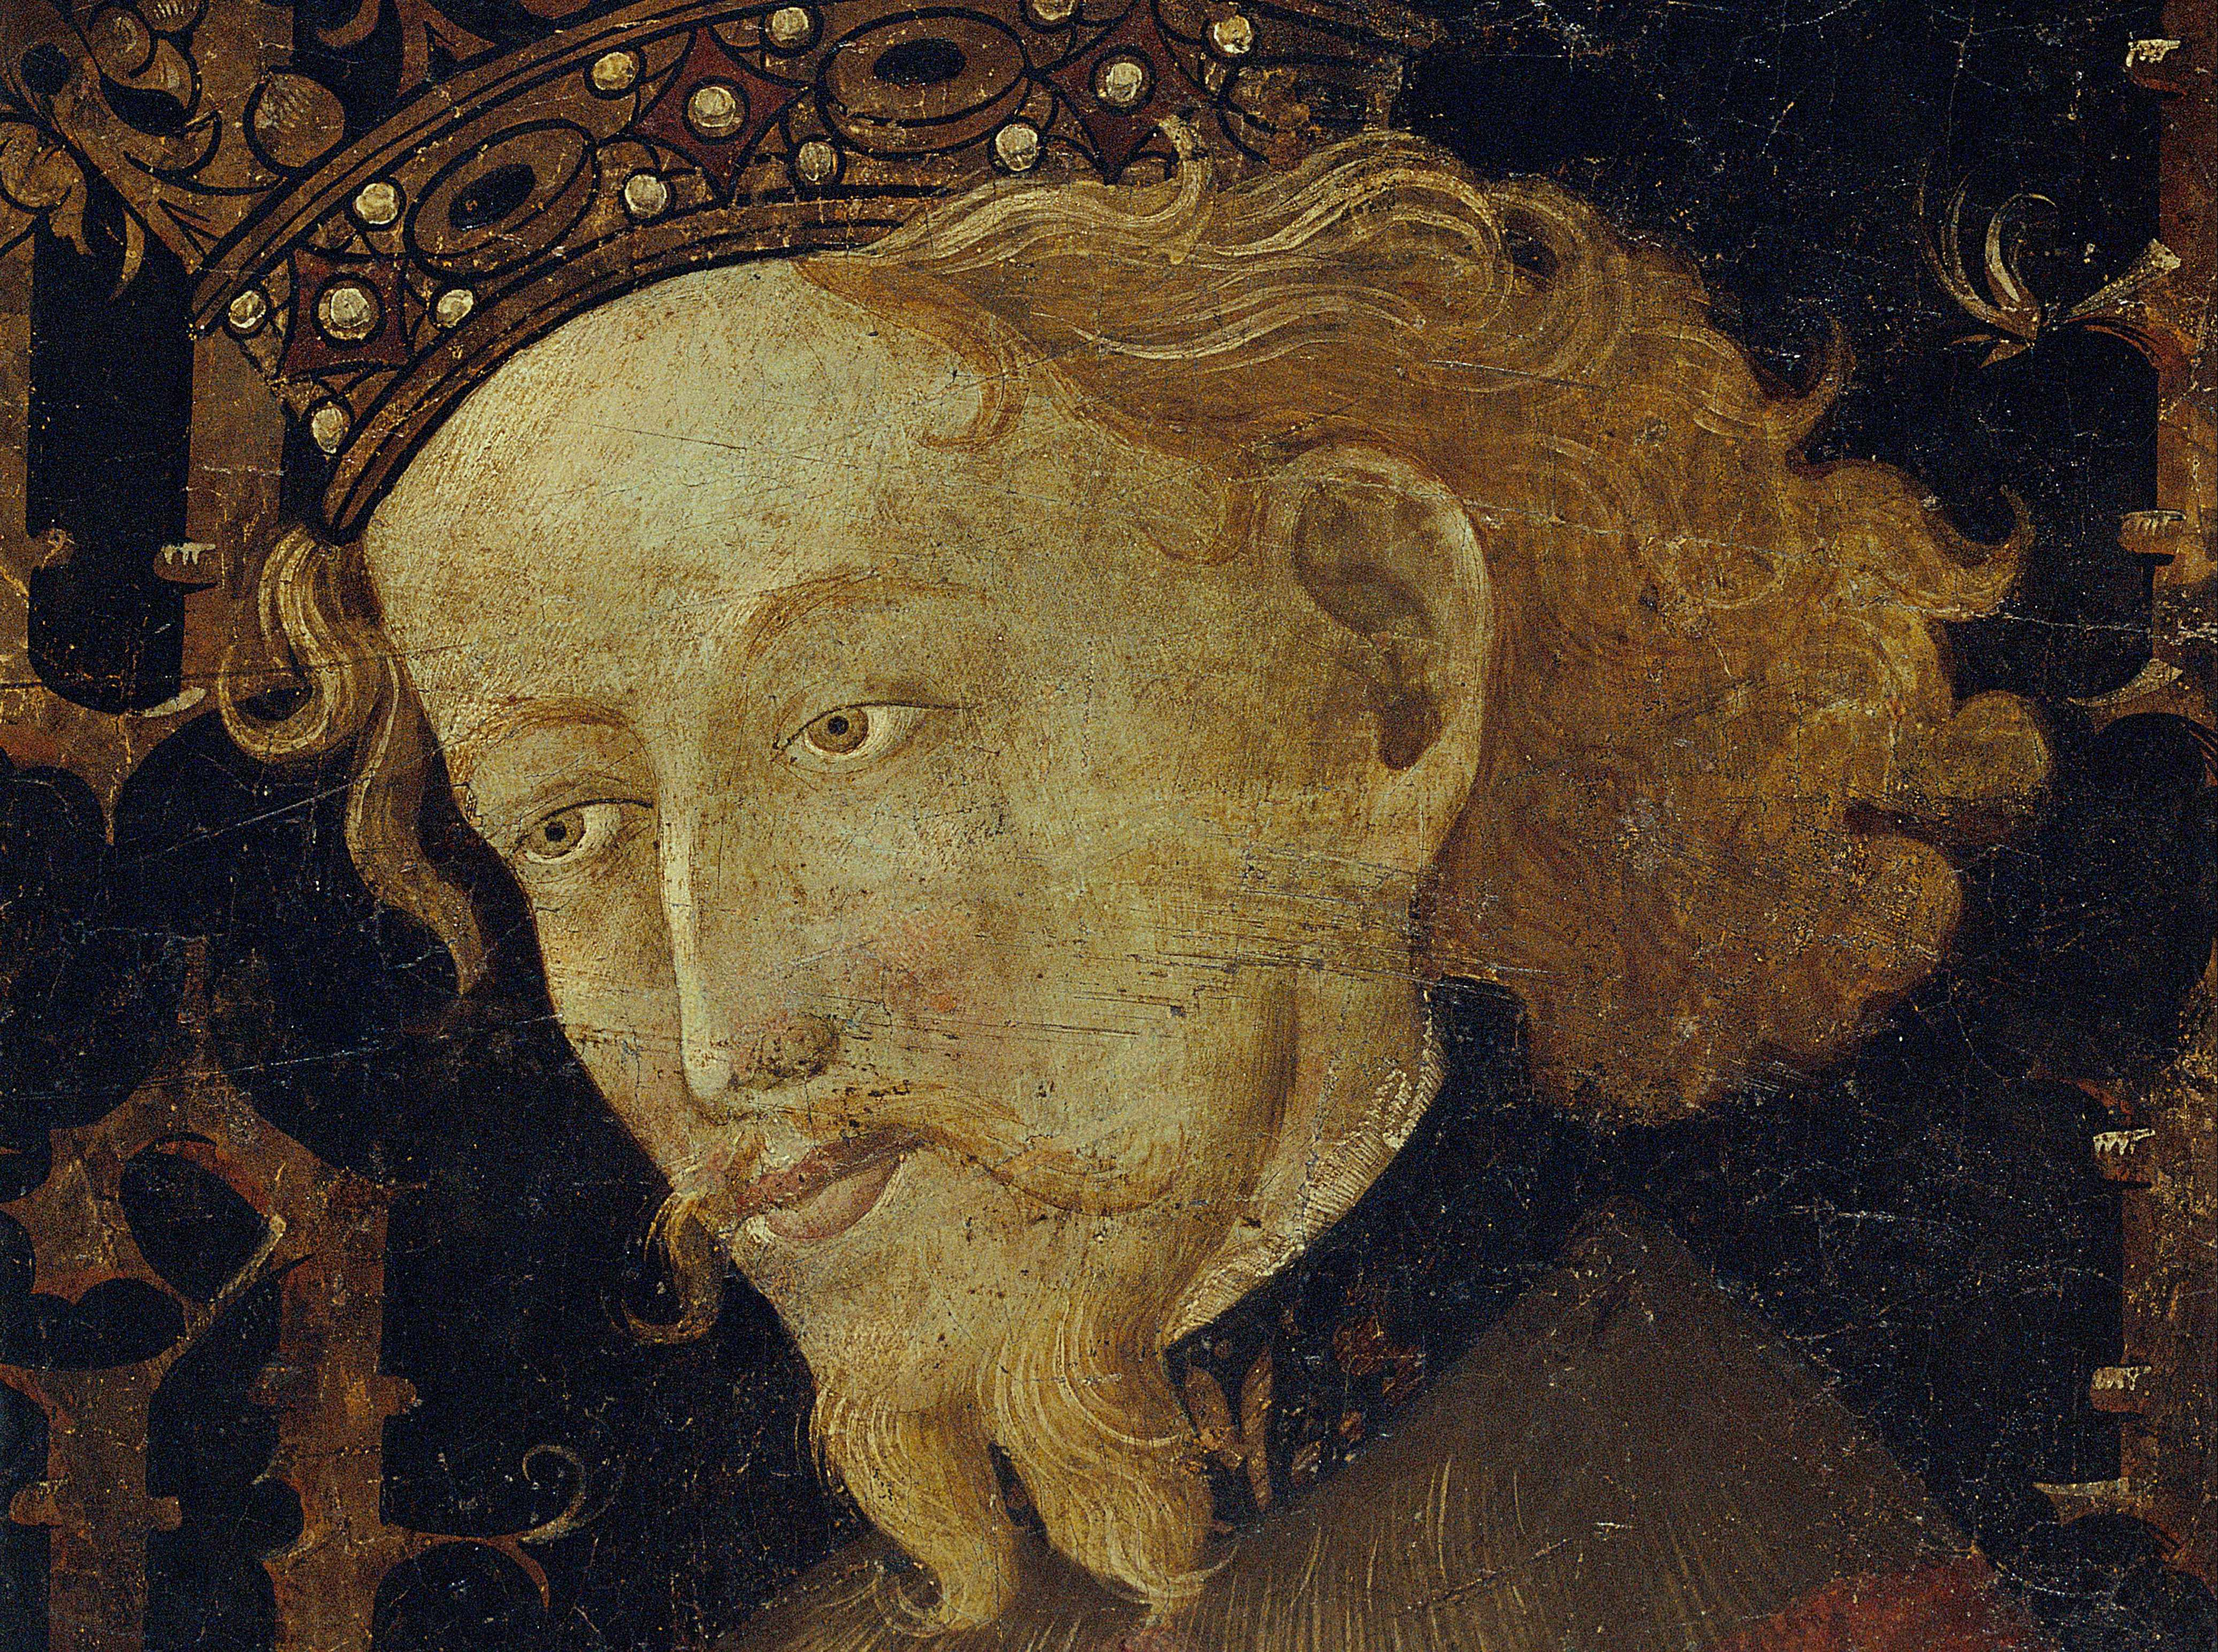 James I of Aragon, depicted in a 15th-century portrait. A king dubbed 'the Conqueror' invested enormous energy in projecting an image of power and authority. But behind the facade lay an insecure ruler who feared failure. (Photo by Fine Art Images/Heritage Images/Getty Images)